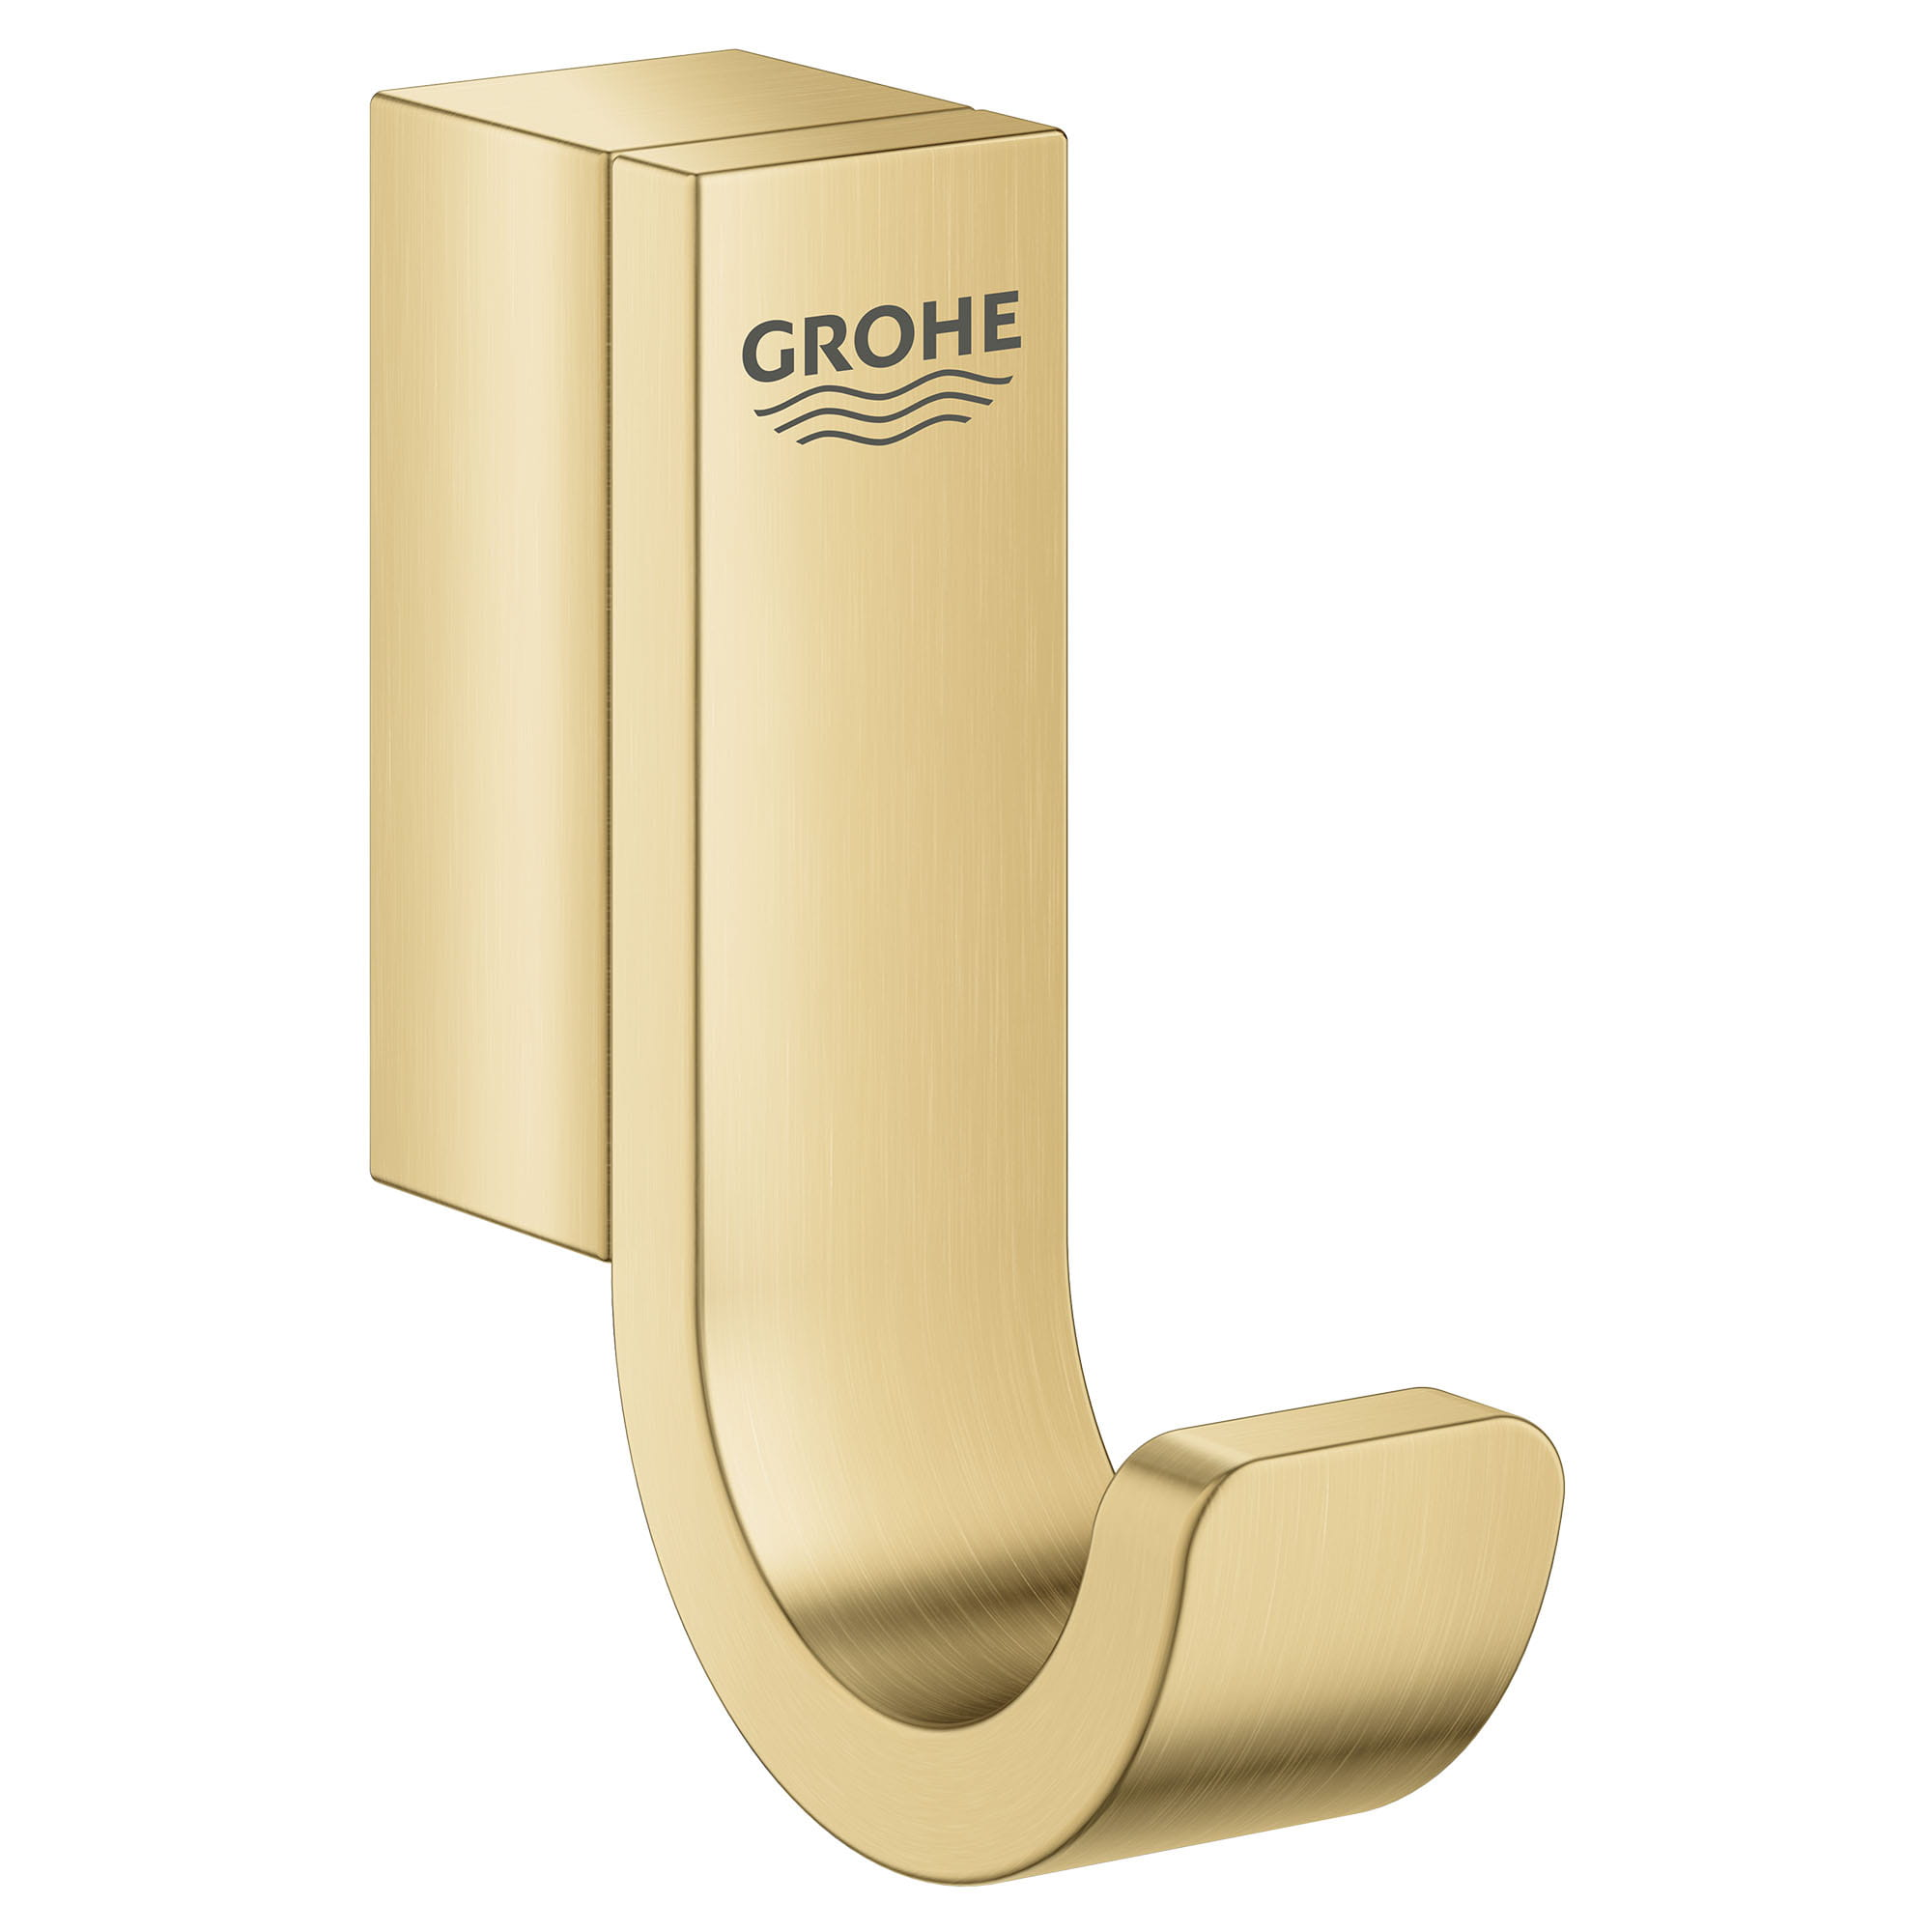 Crochet GROHE BRUSHED COOL SUNRISE